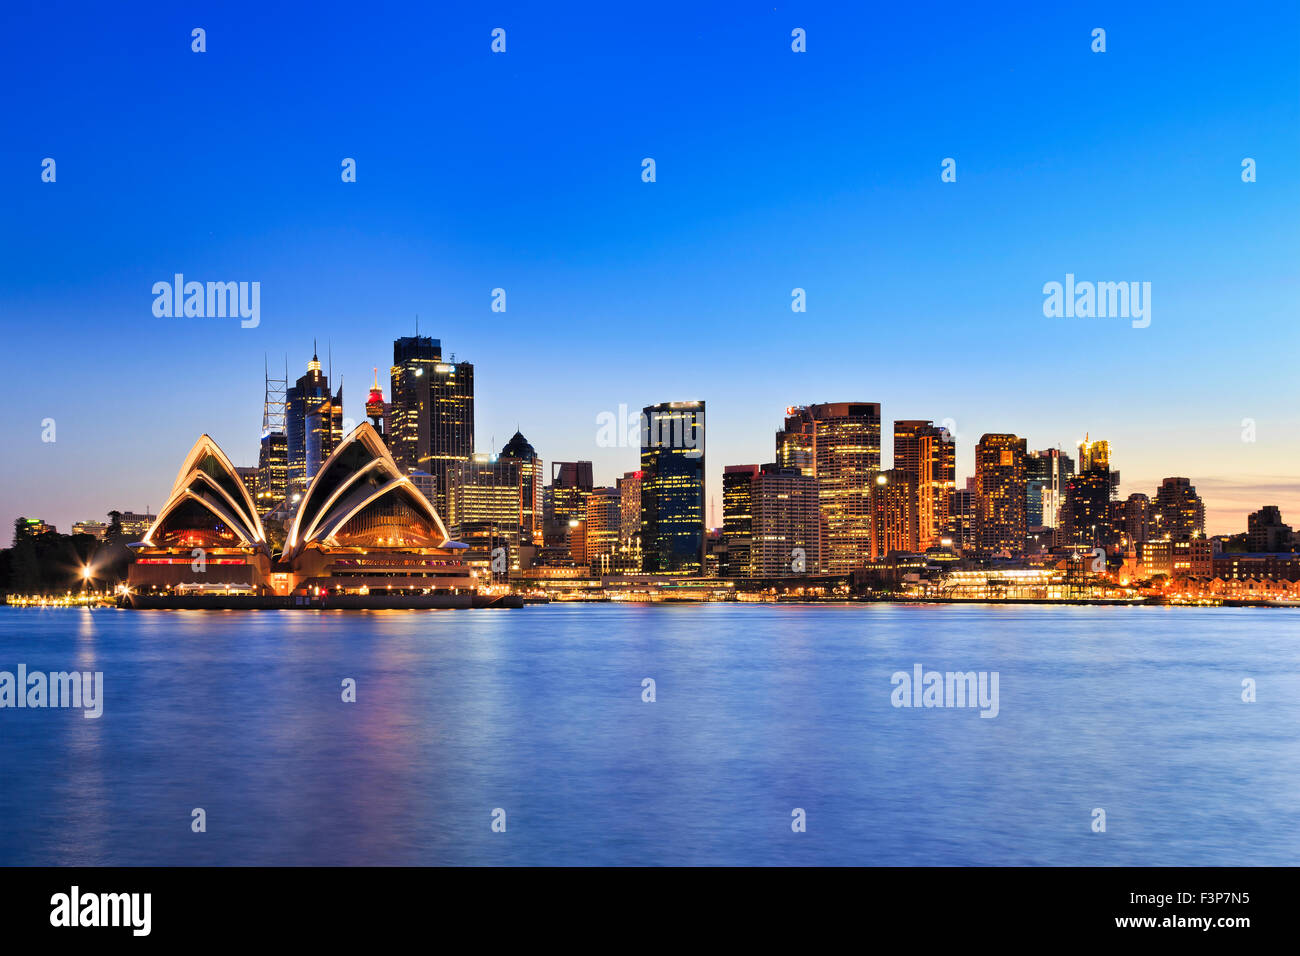 Sydney city landmarks around harbour at synset with illumination reflecting in blurred waters - Stock Image